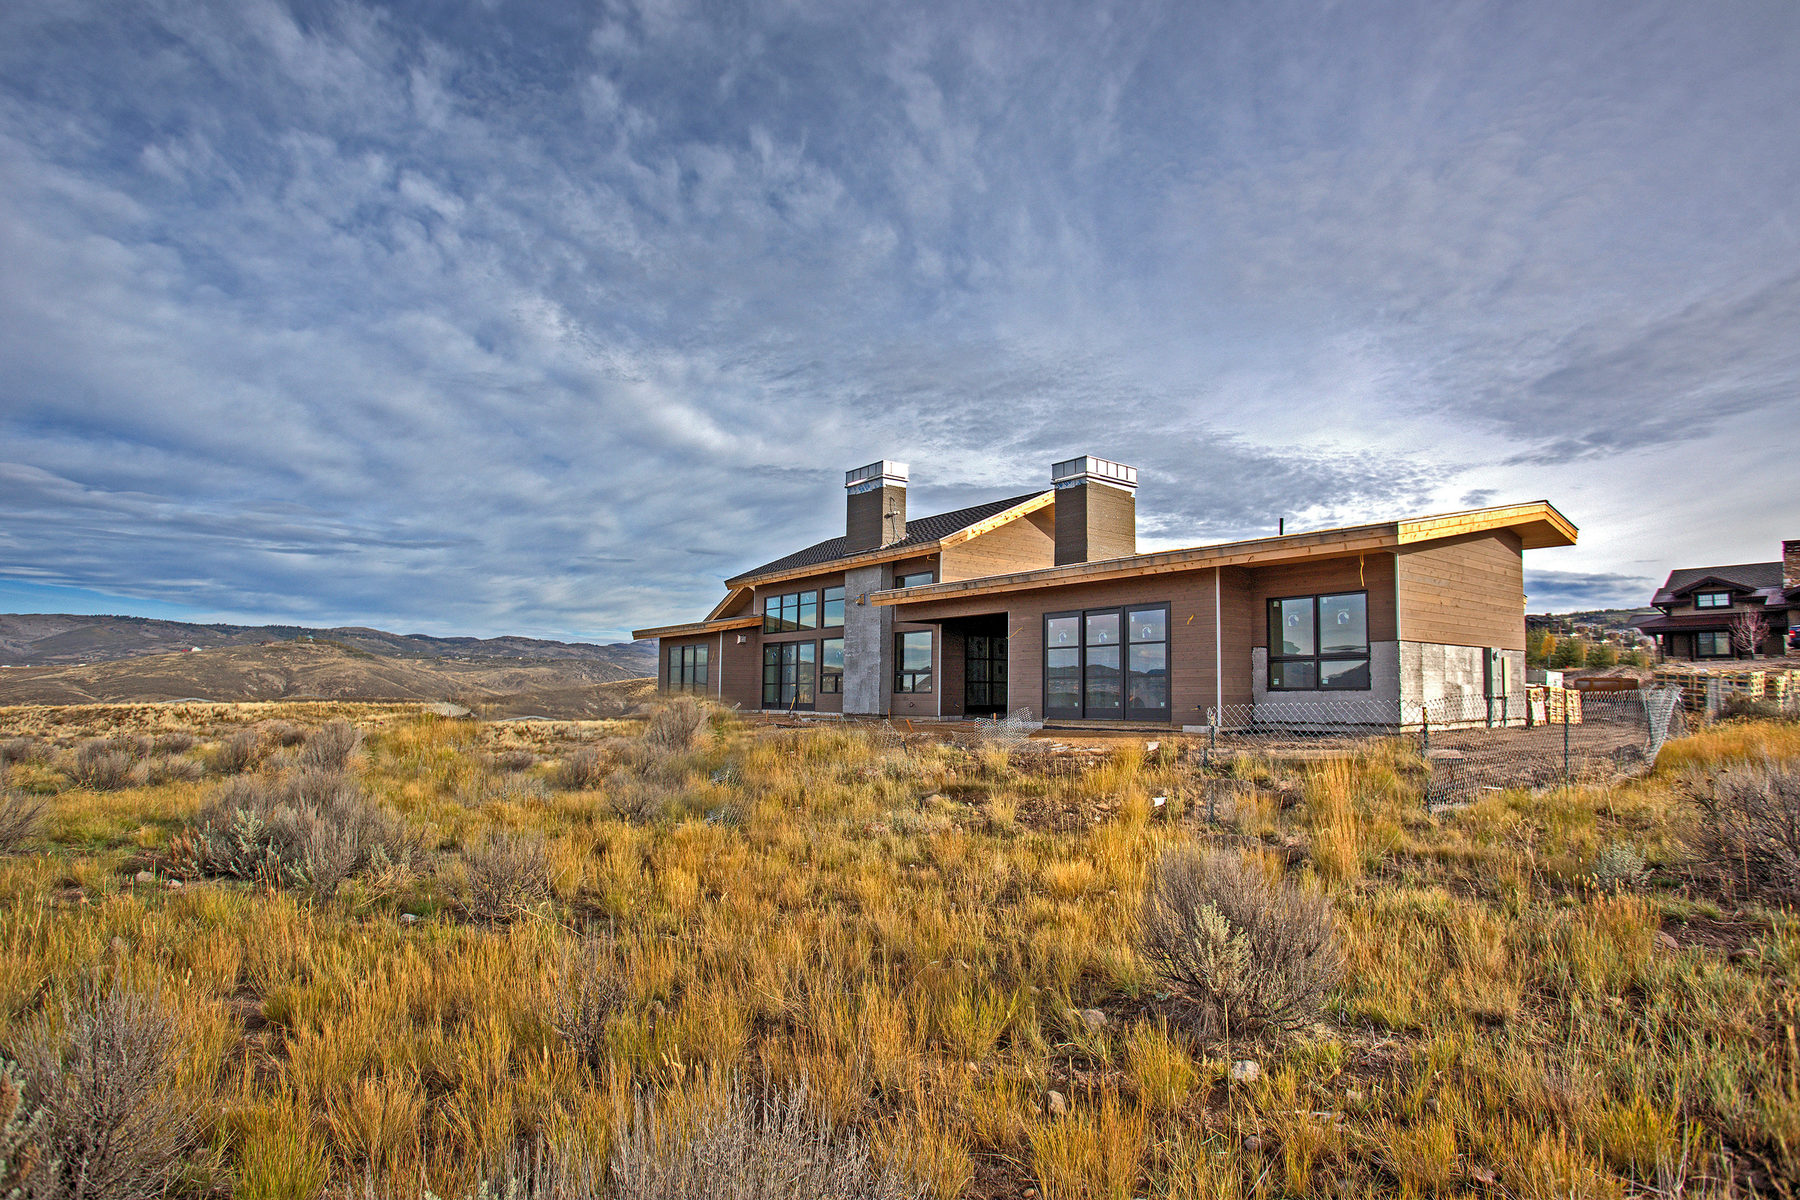 Single Family Home for Sale at Mountain Modern Masterpiece 2302 Palomino Trail Park City, Utah 84098 United States